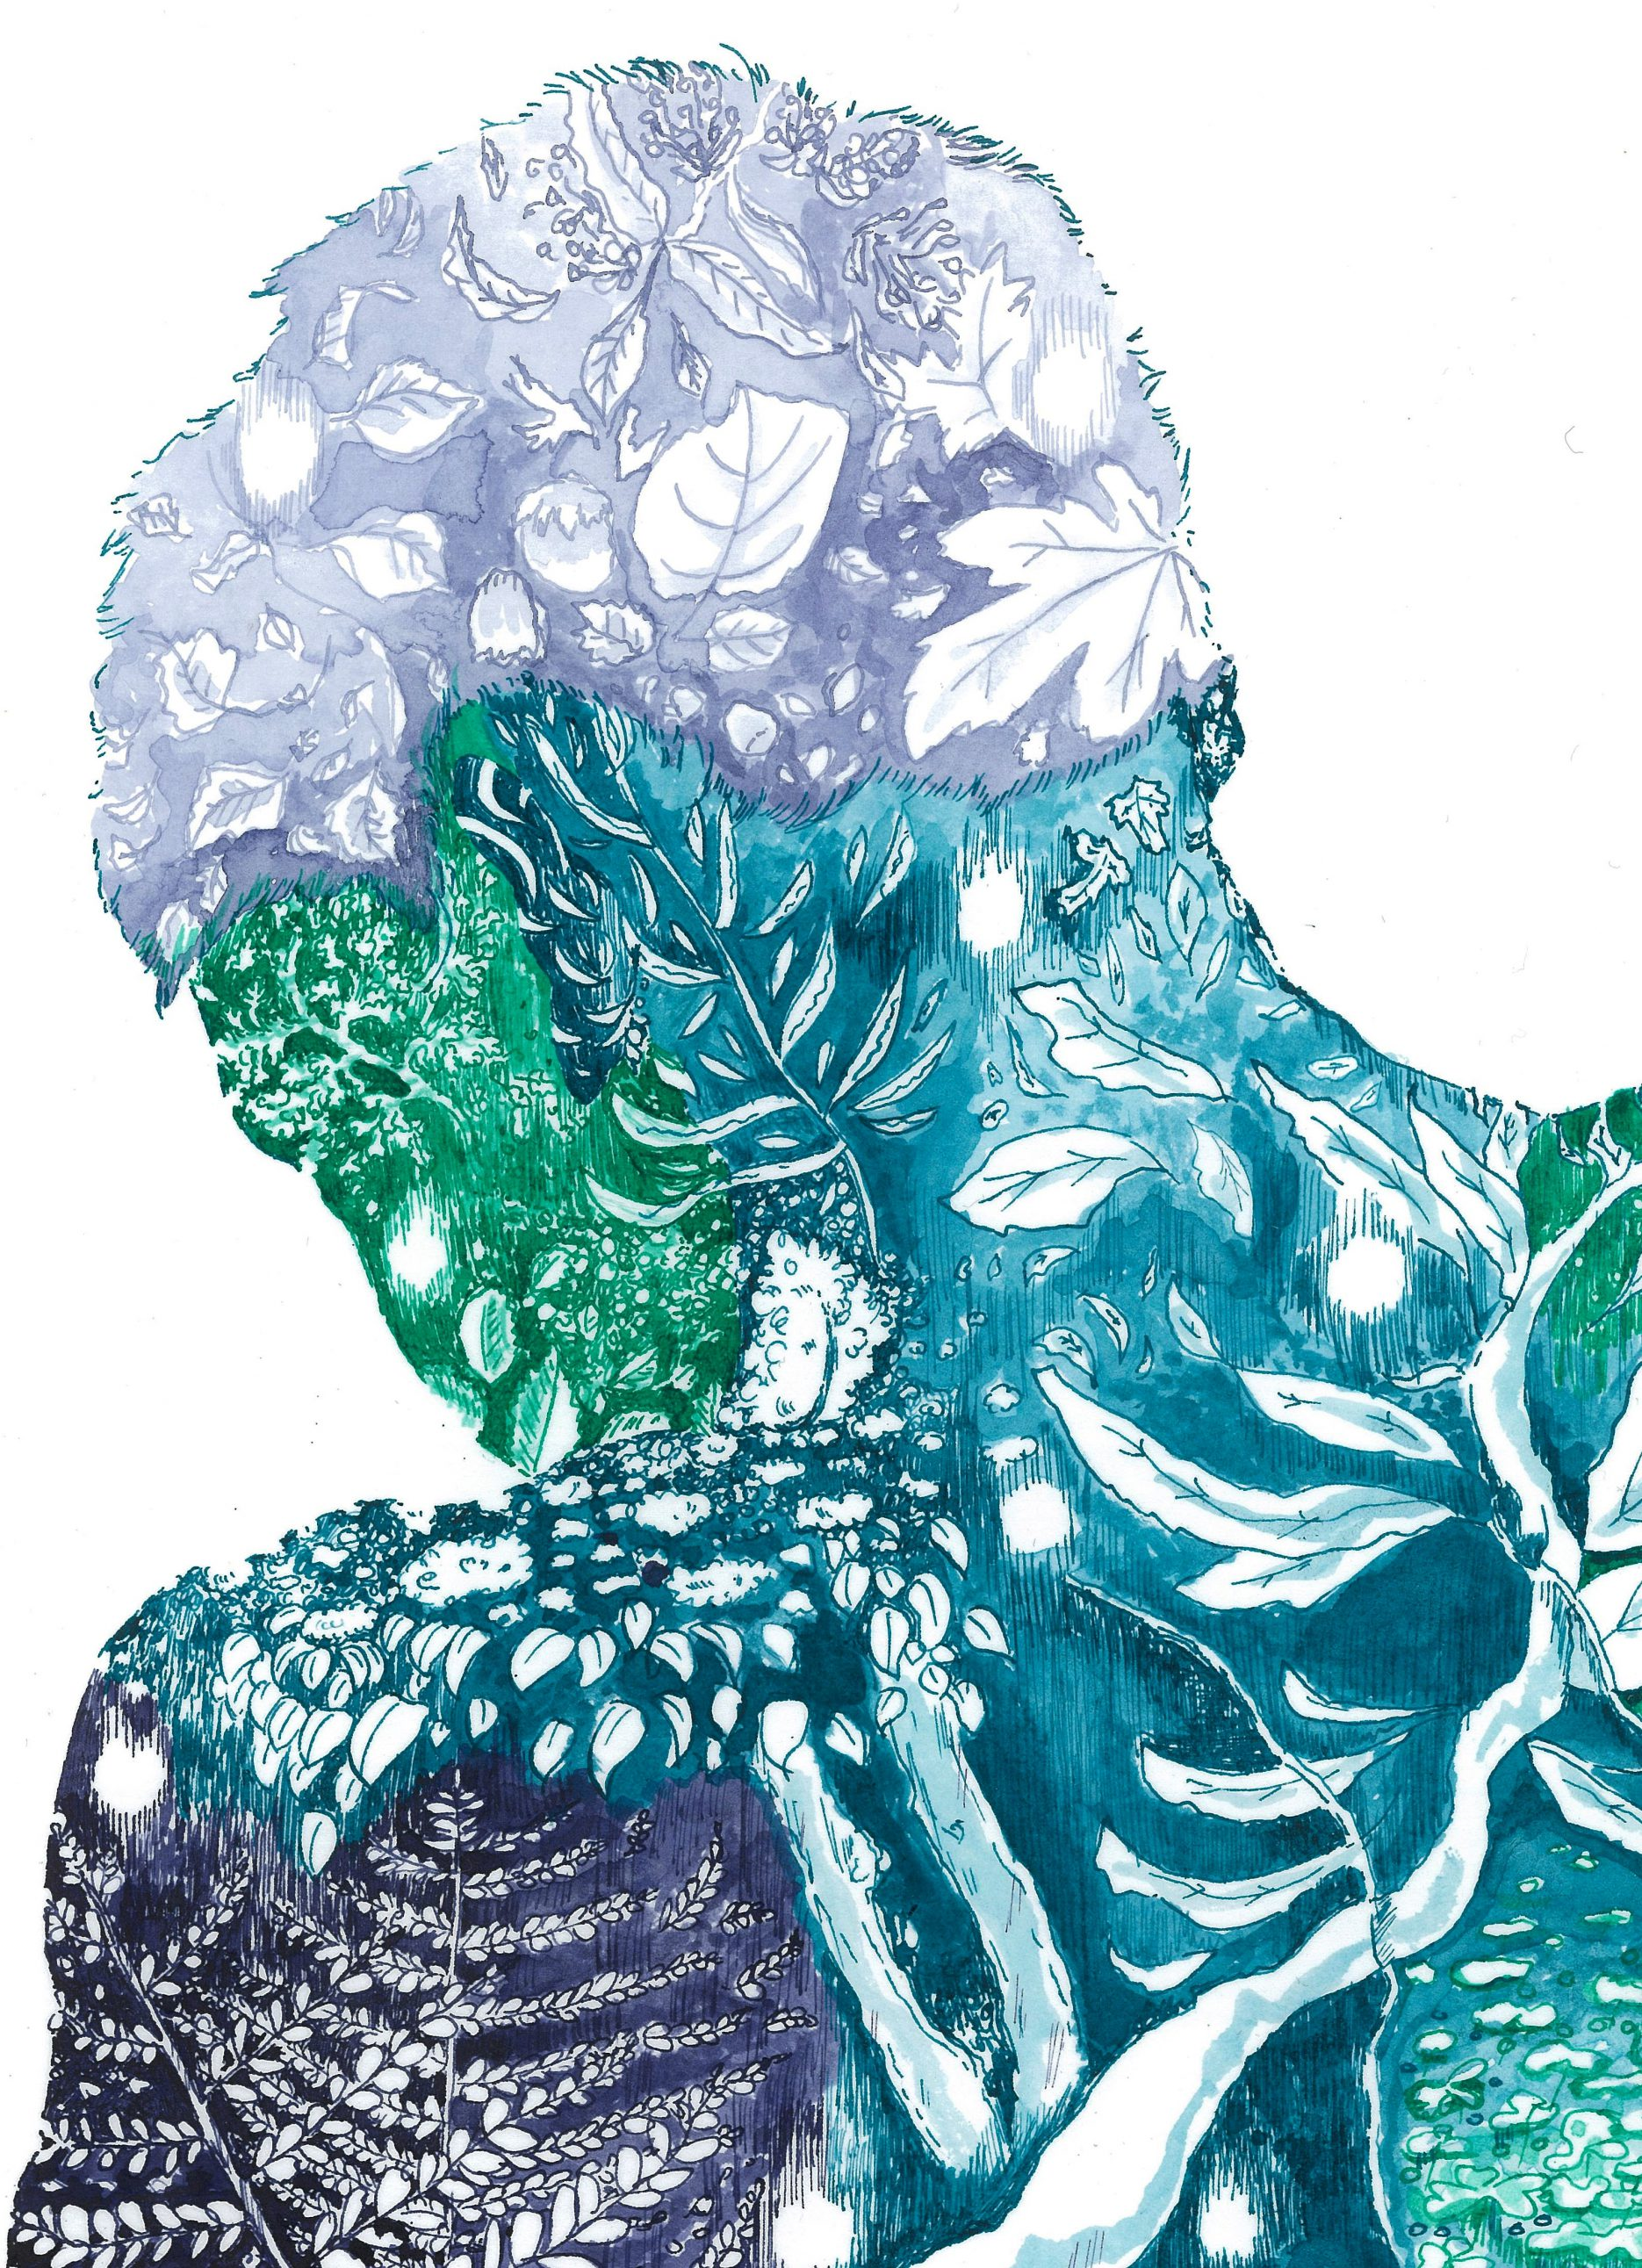 Illustration in colors of greens and blues, seeing a shape of a torso and face filled with plants